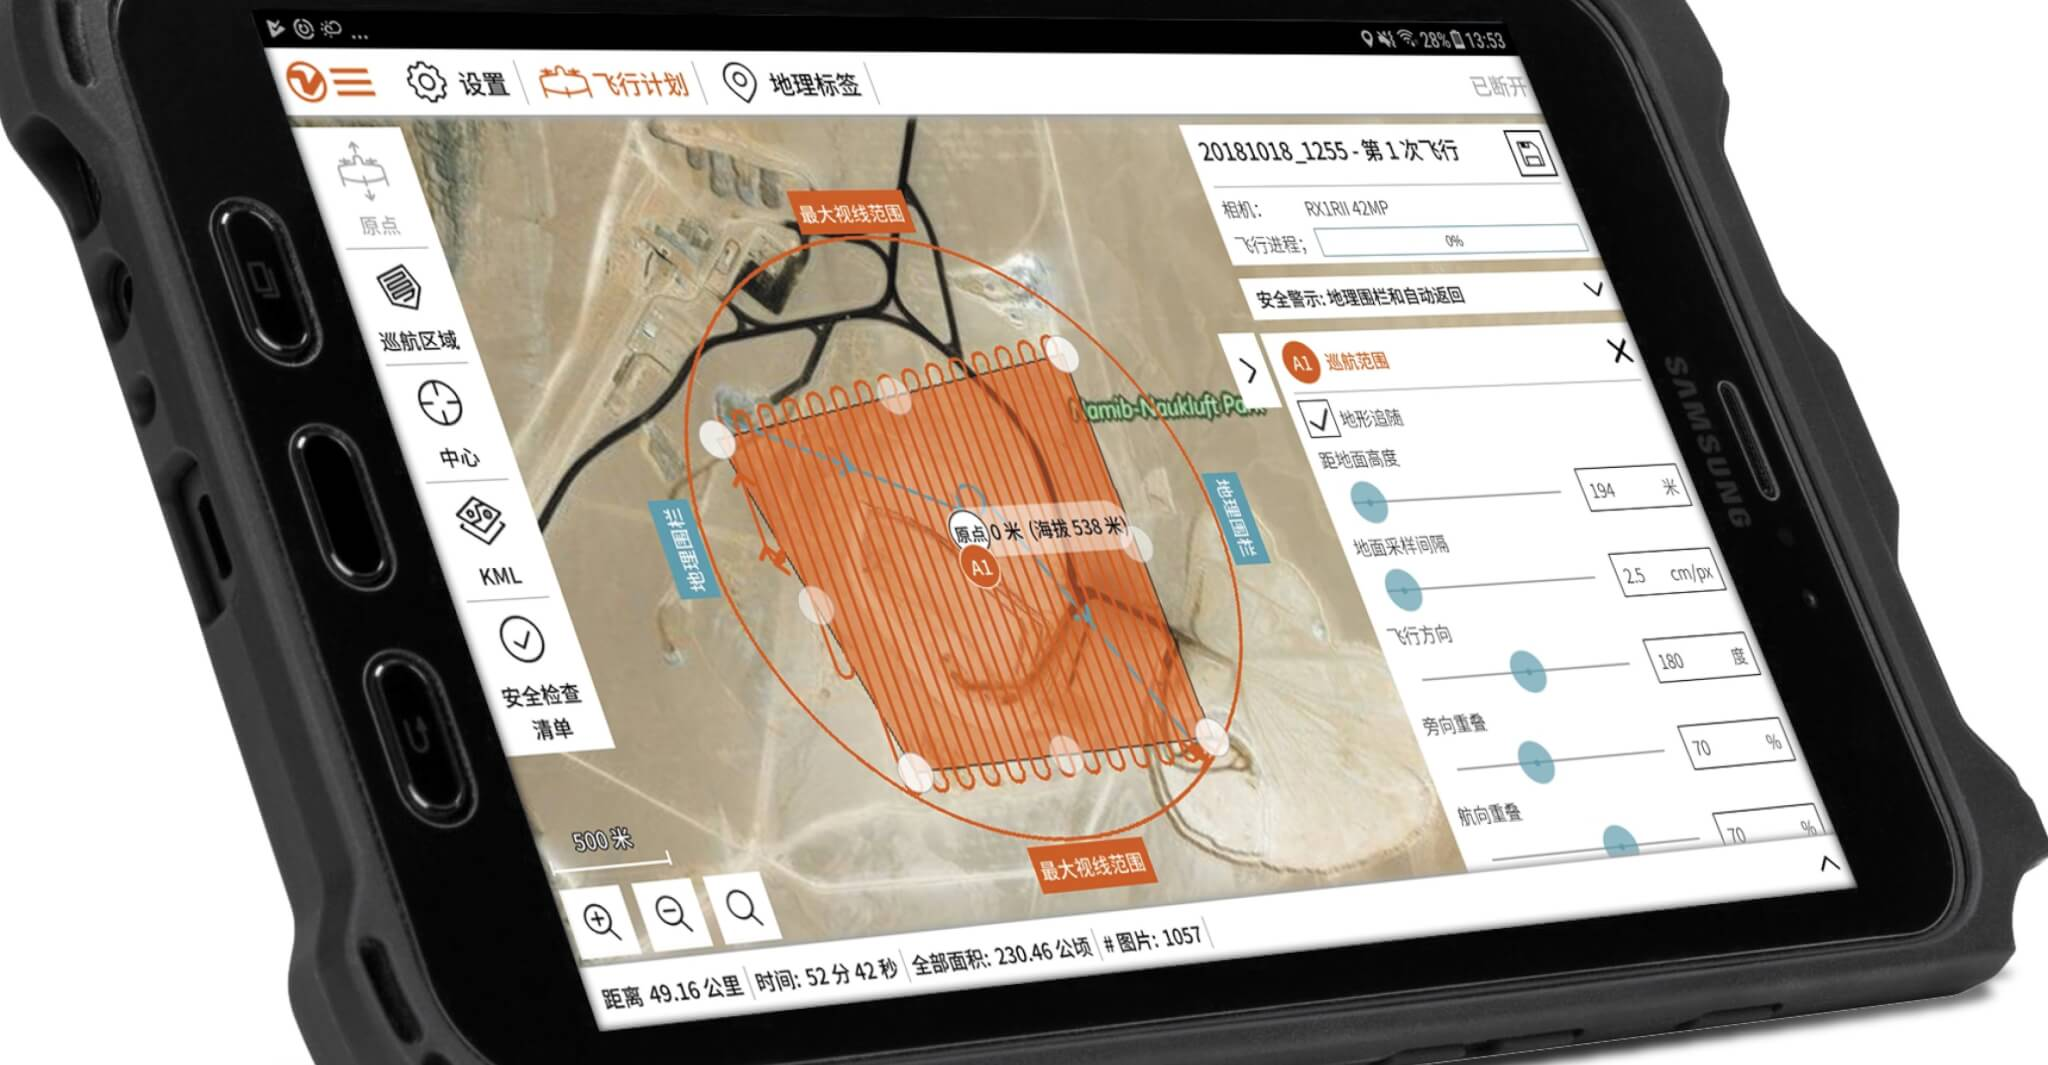 Drone flight planning multilingual